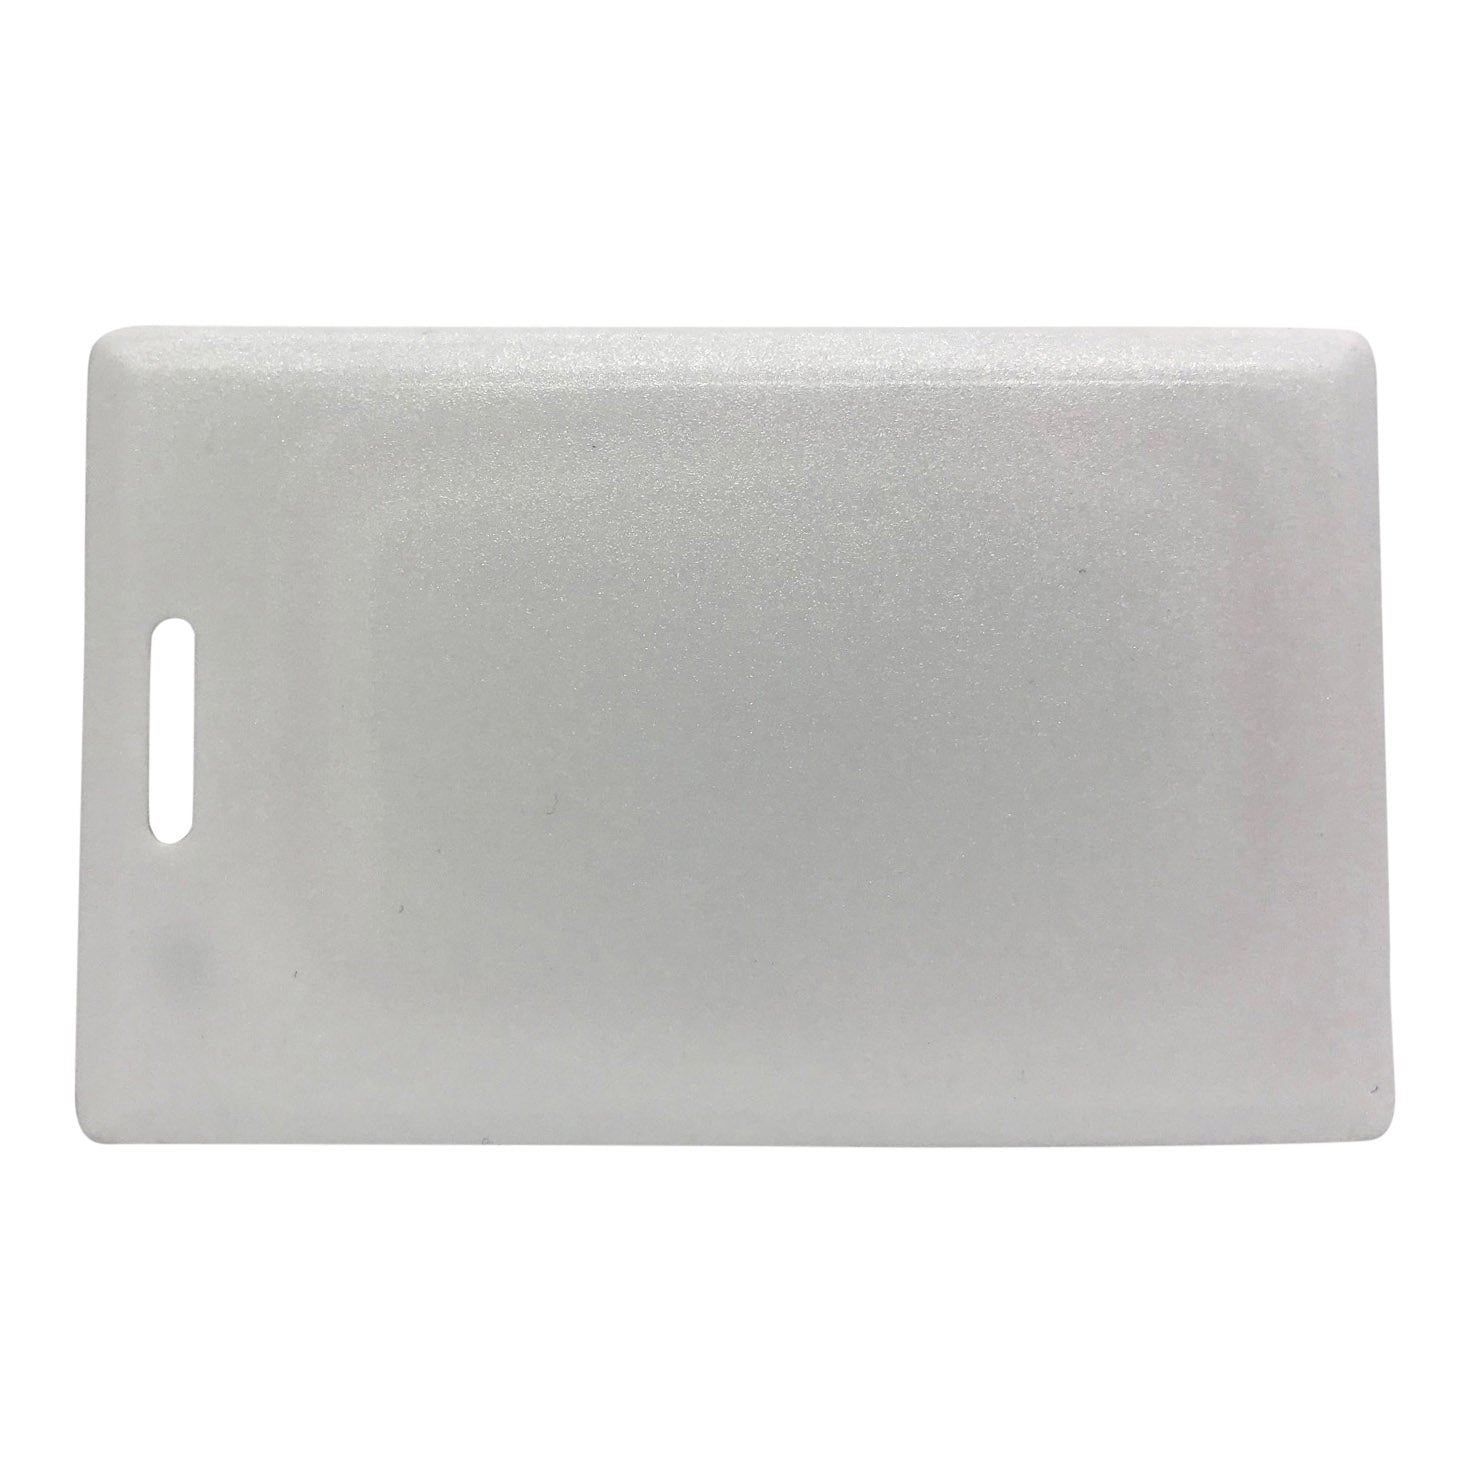 100 pcs 26 Bit Proximity Clamshell Weigand Proximity Cards Custom